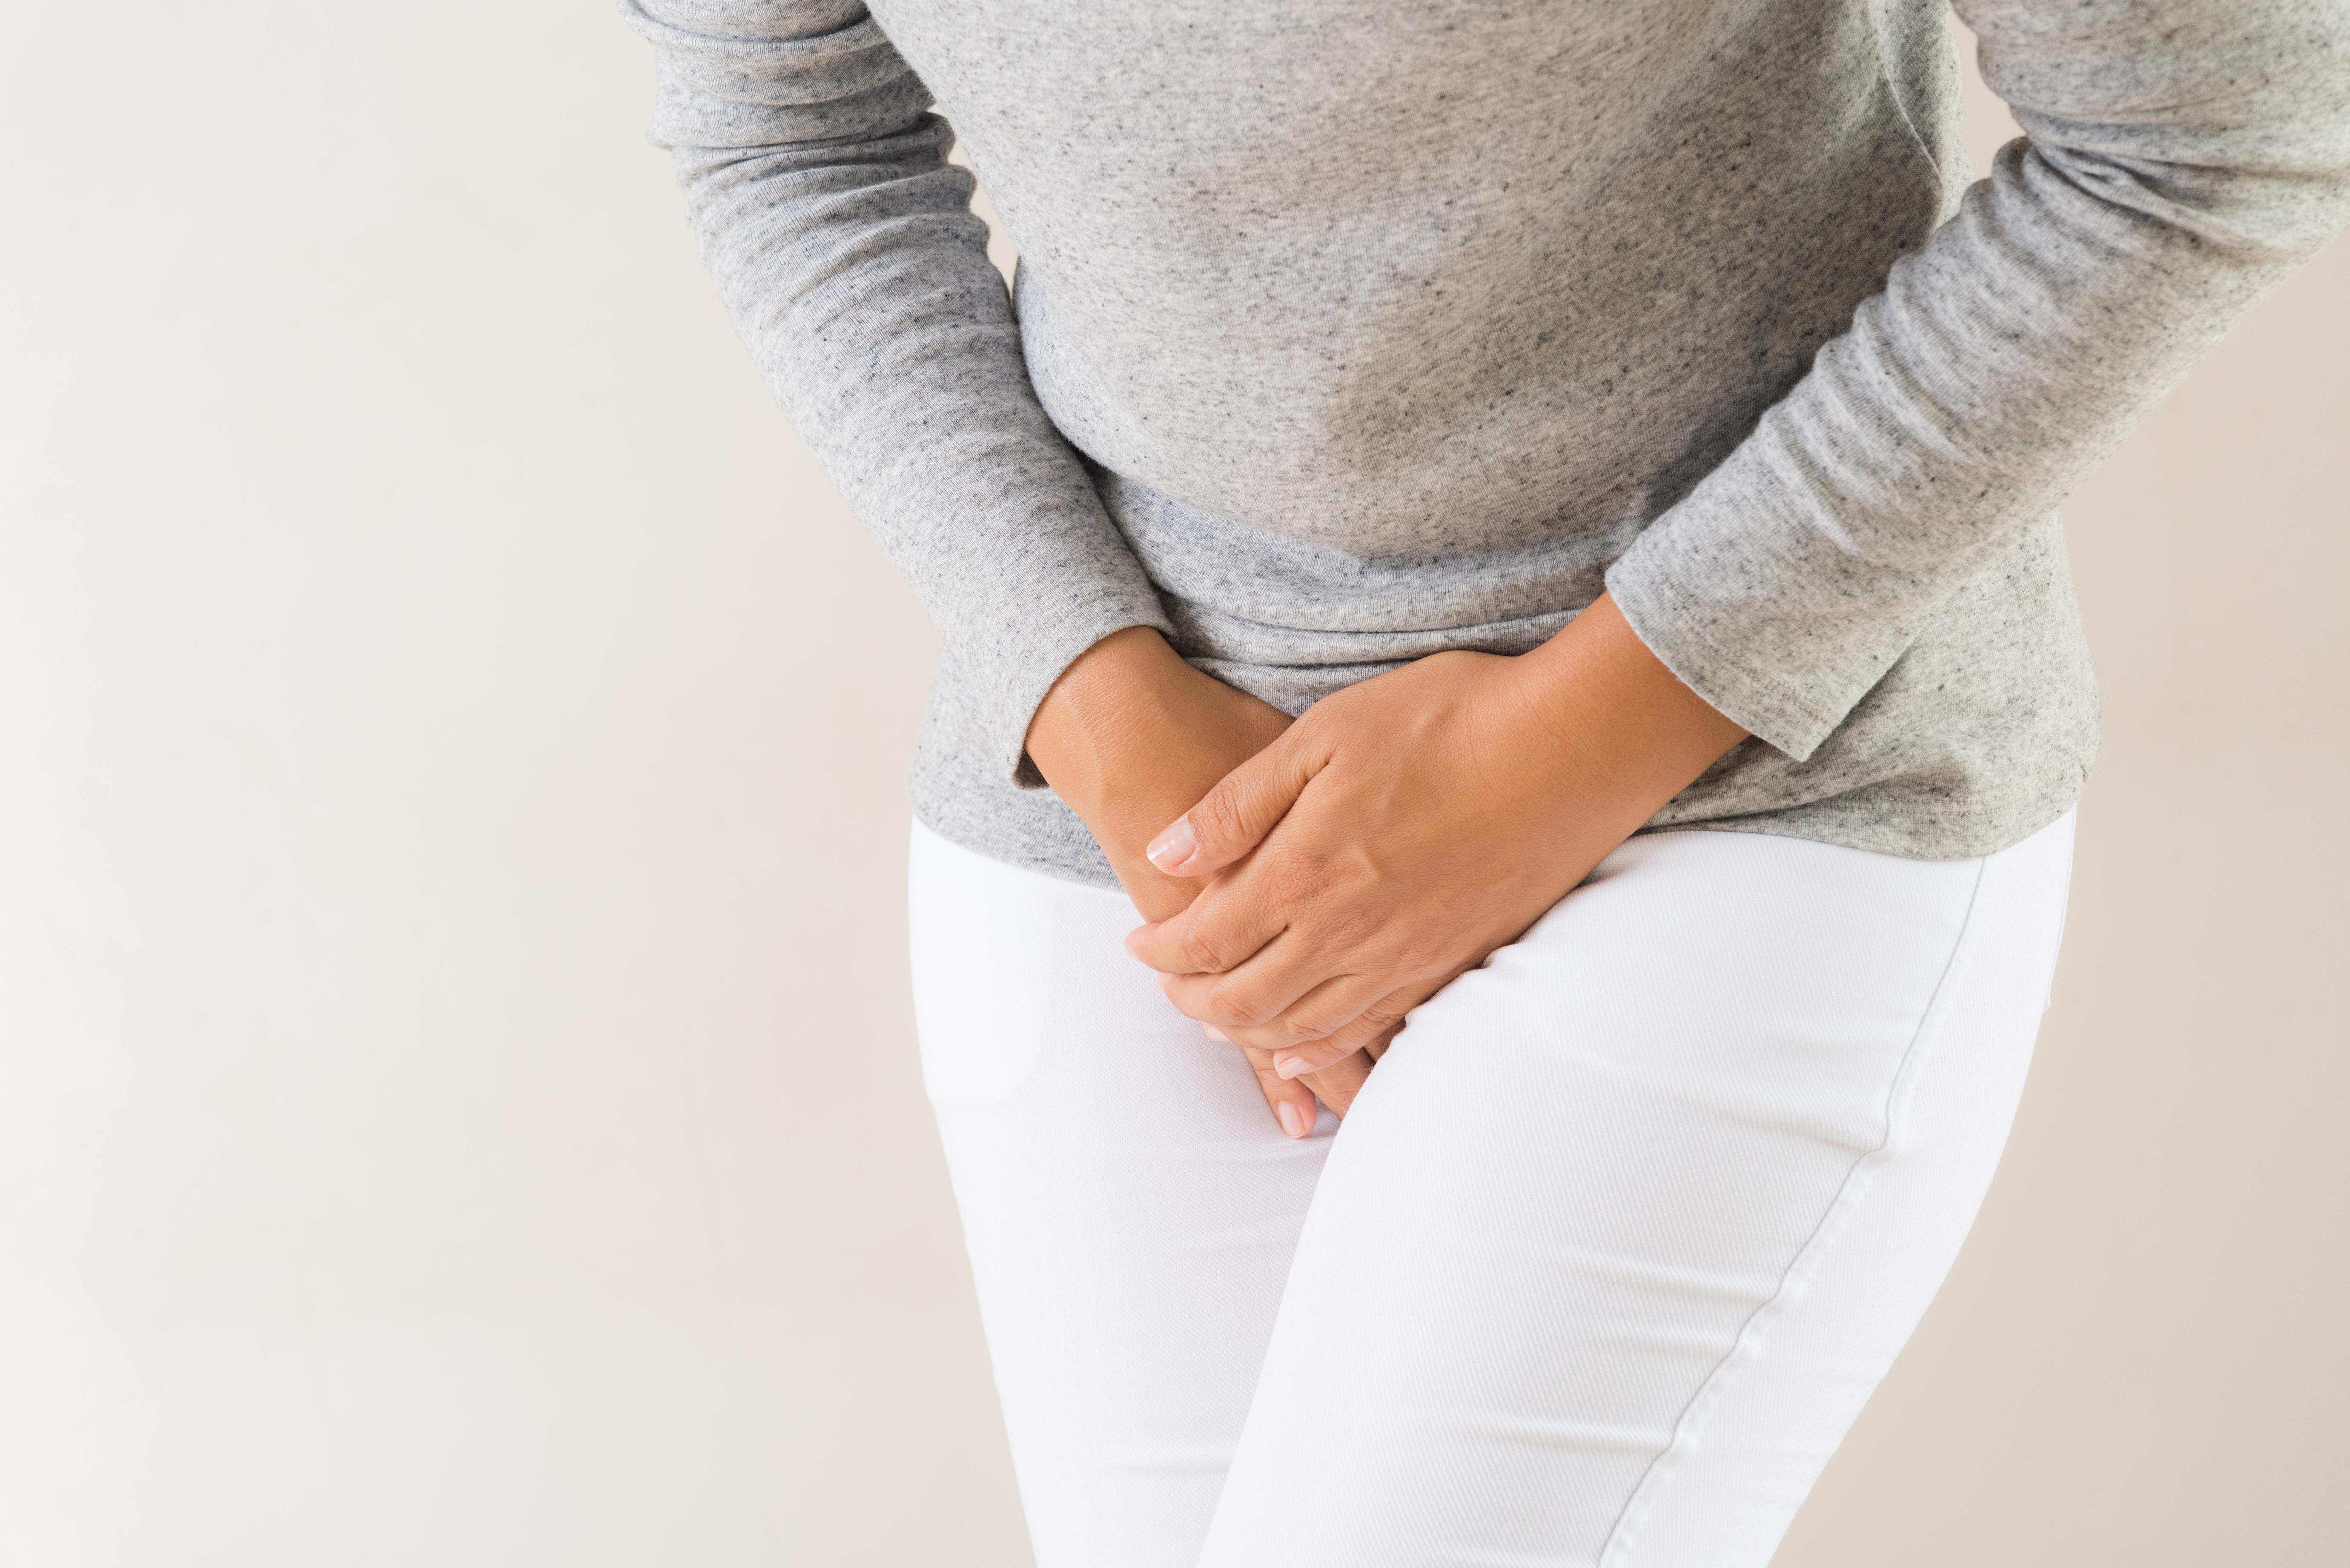 Two thirds of women experience bladder leaks in the UK - here's how to help prevent them